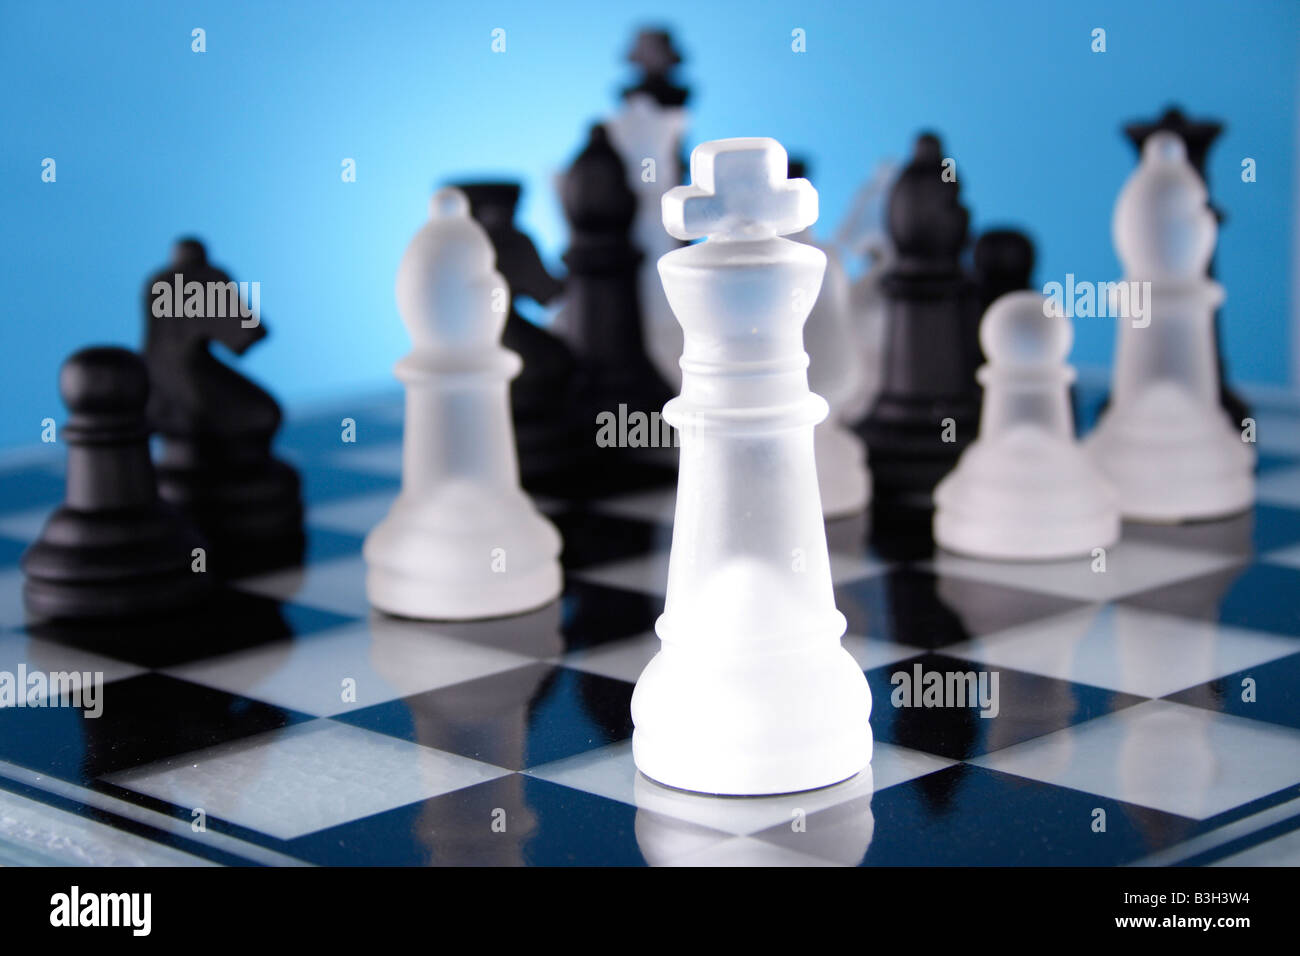 A game of chess comes to an end. The king is checkmated - Stock Image